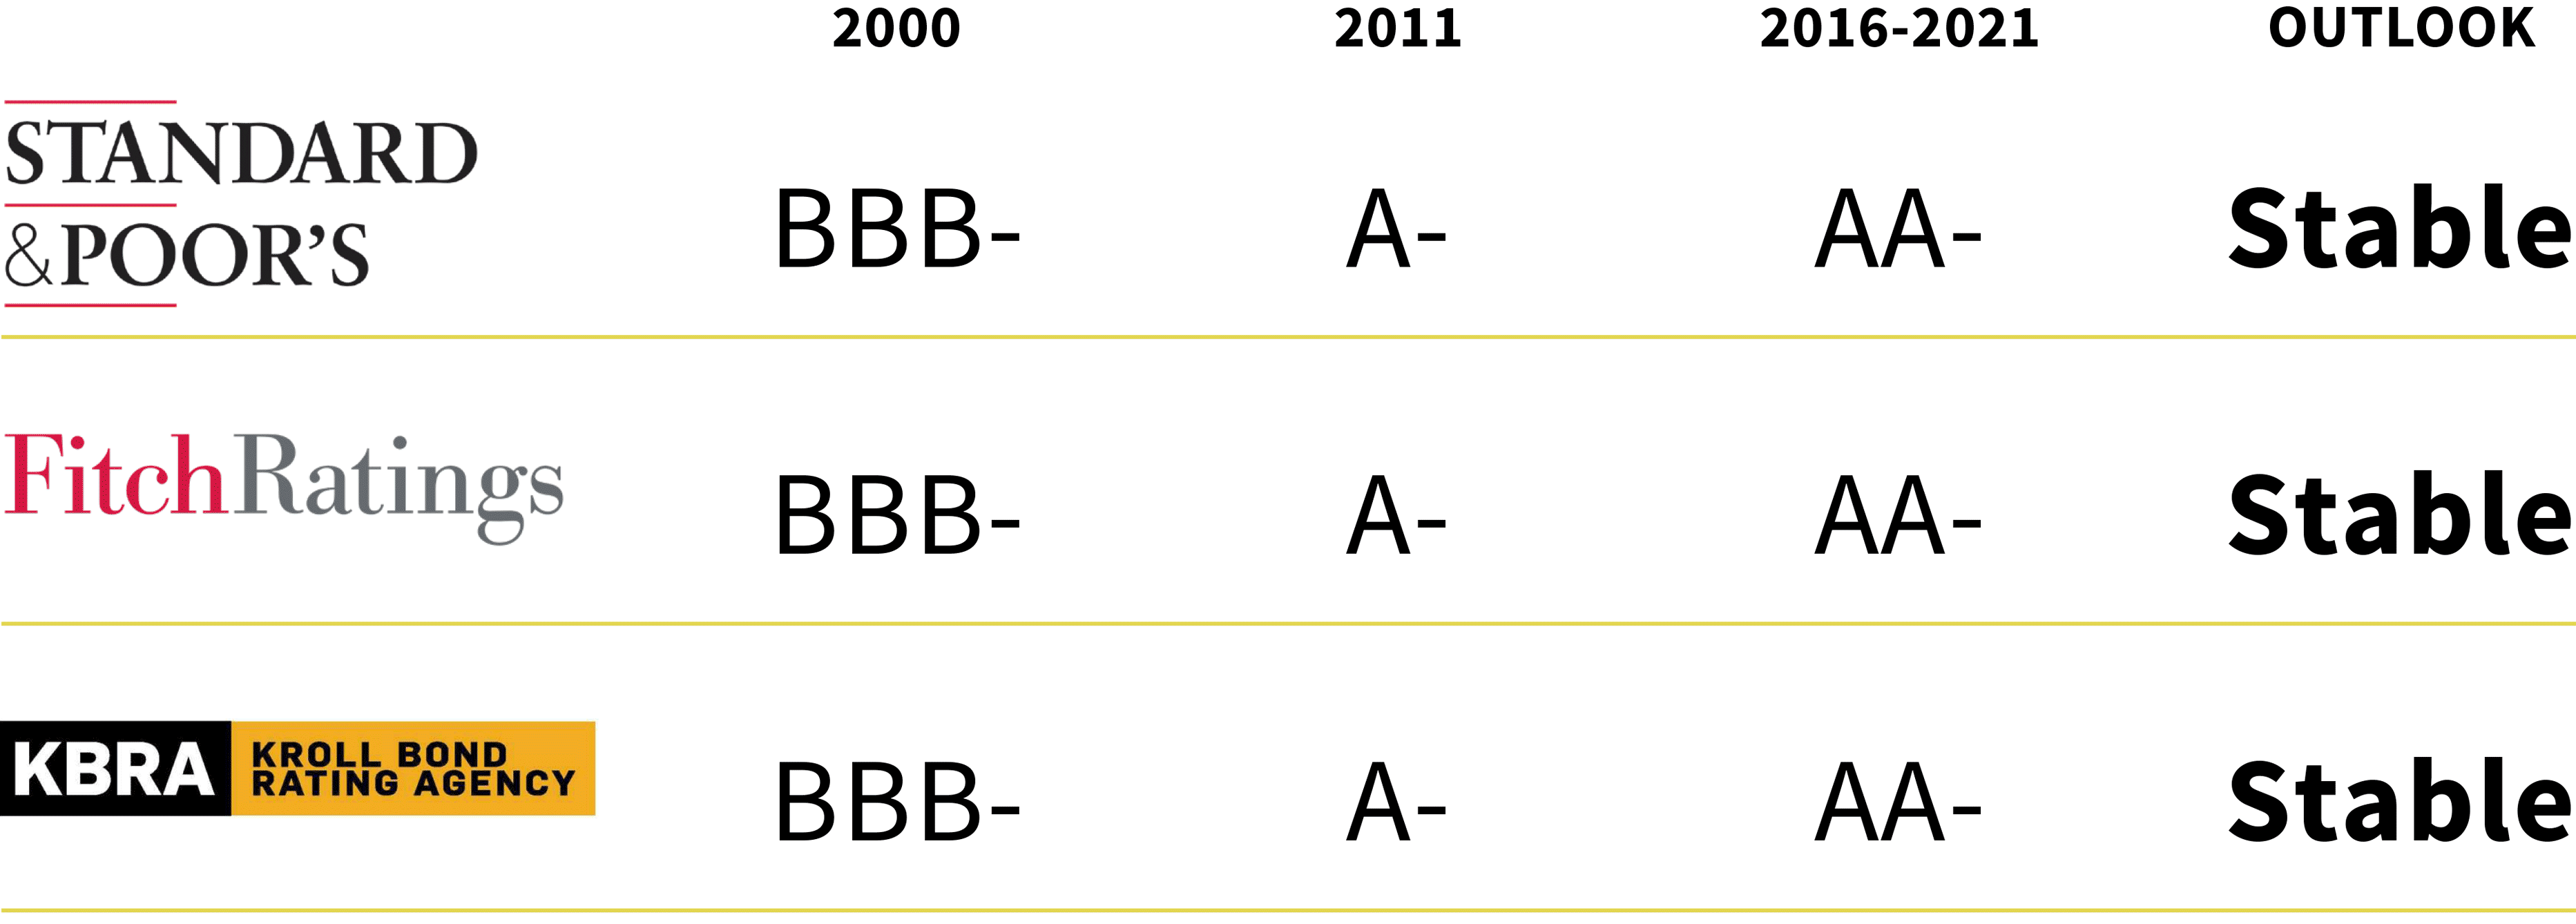 Infographic showing the improved bond rating of Waterbury, CT over the years